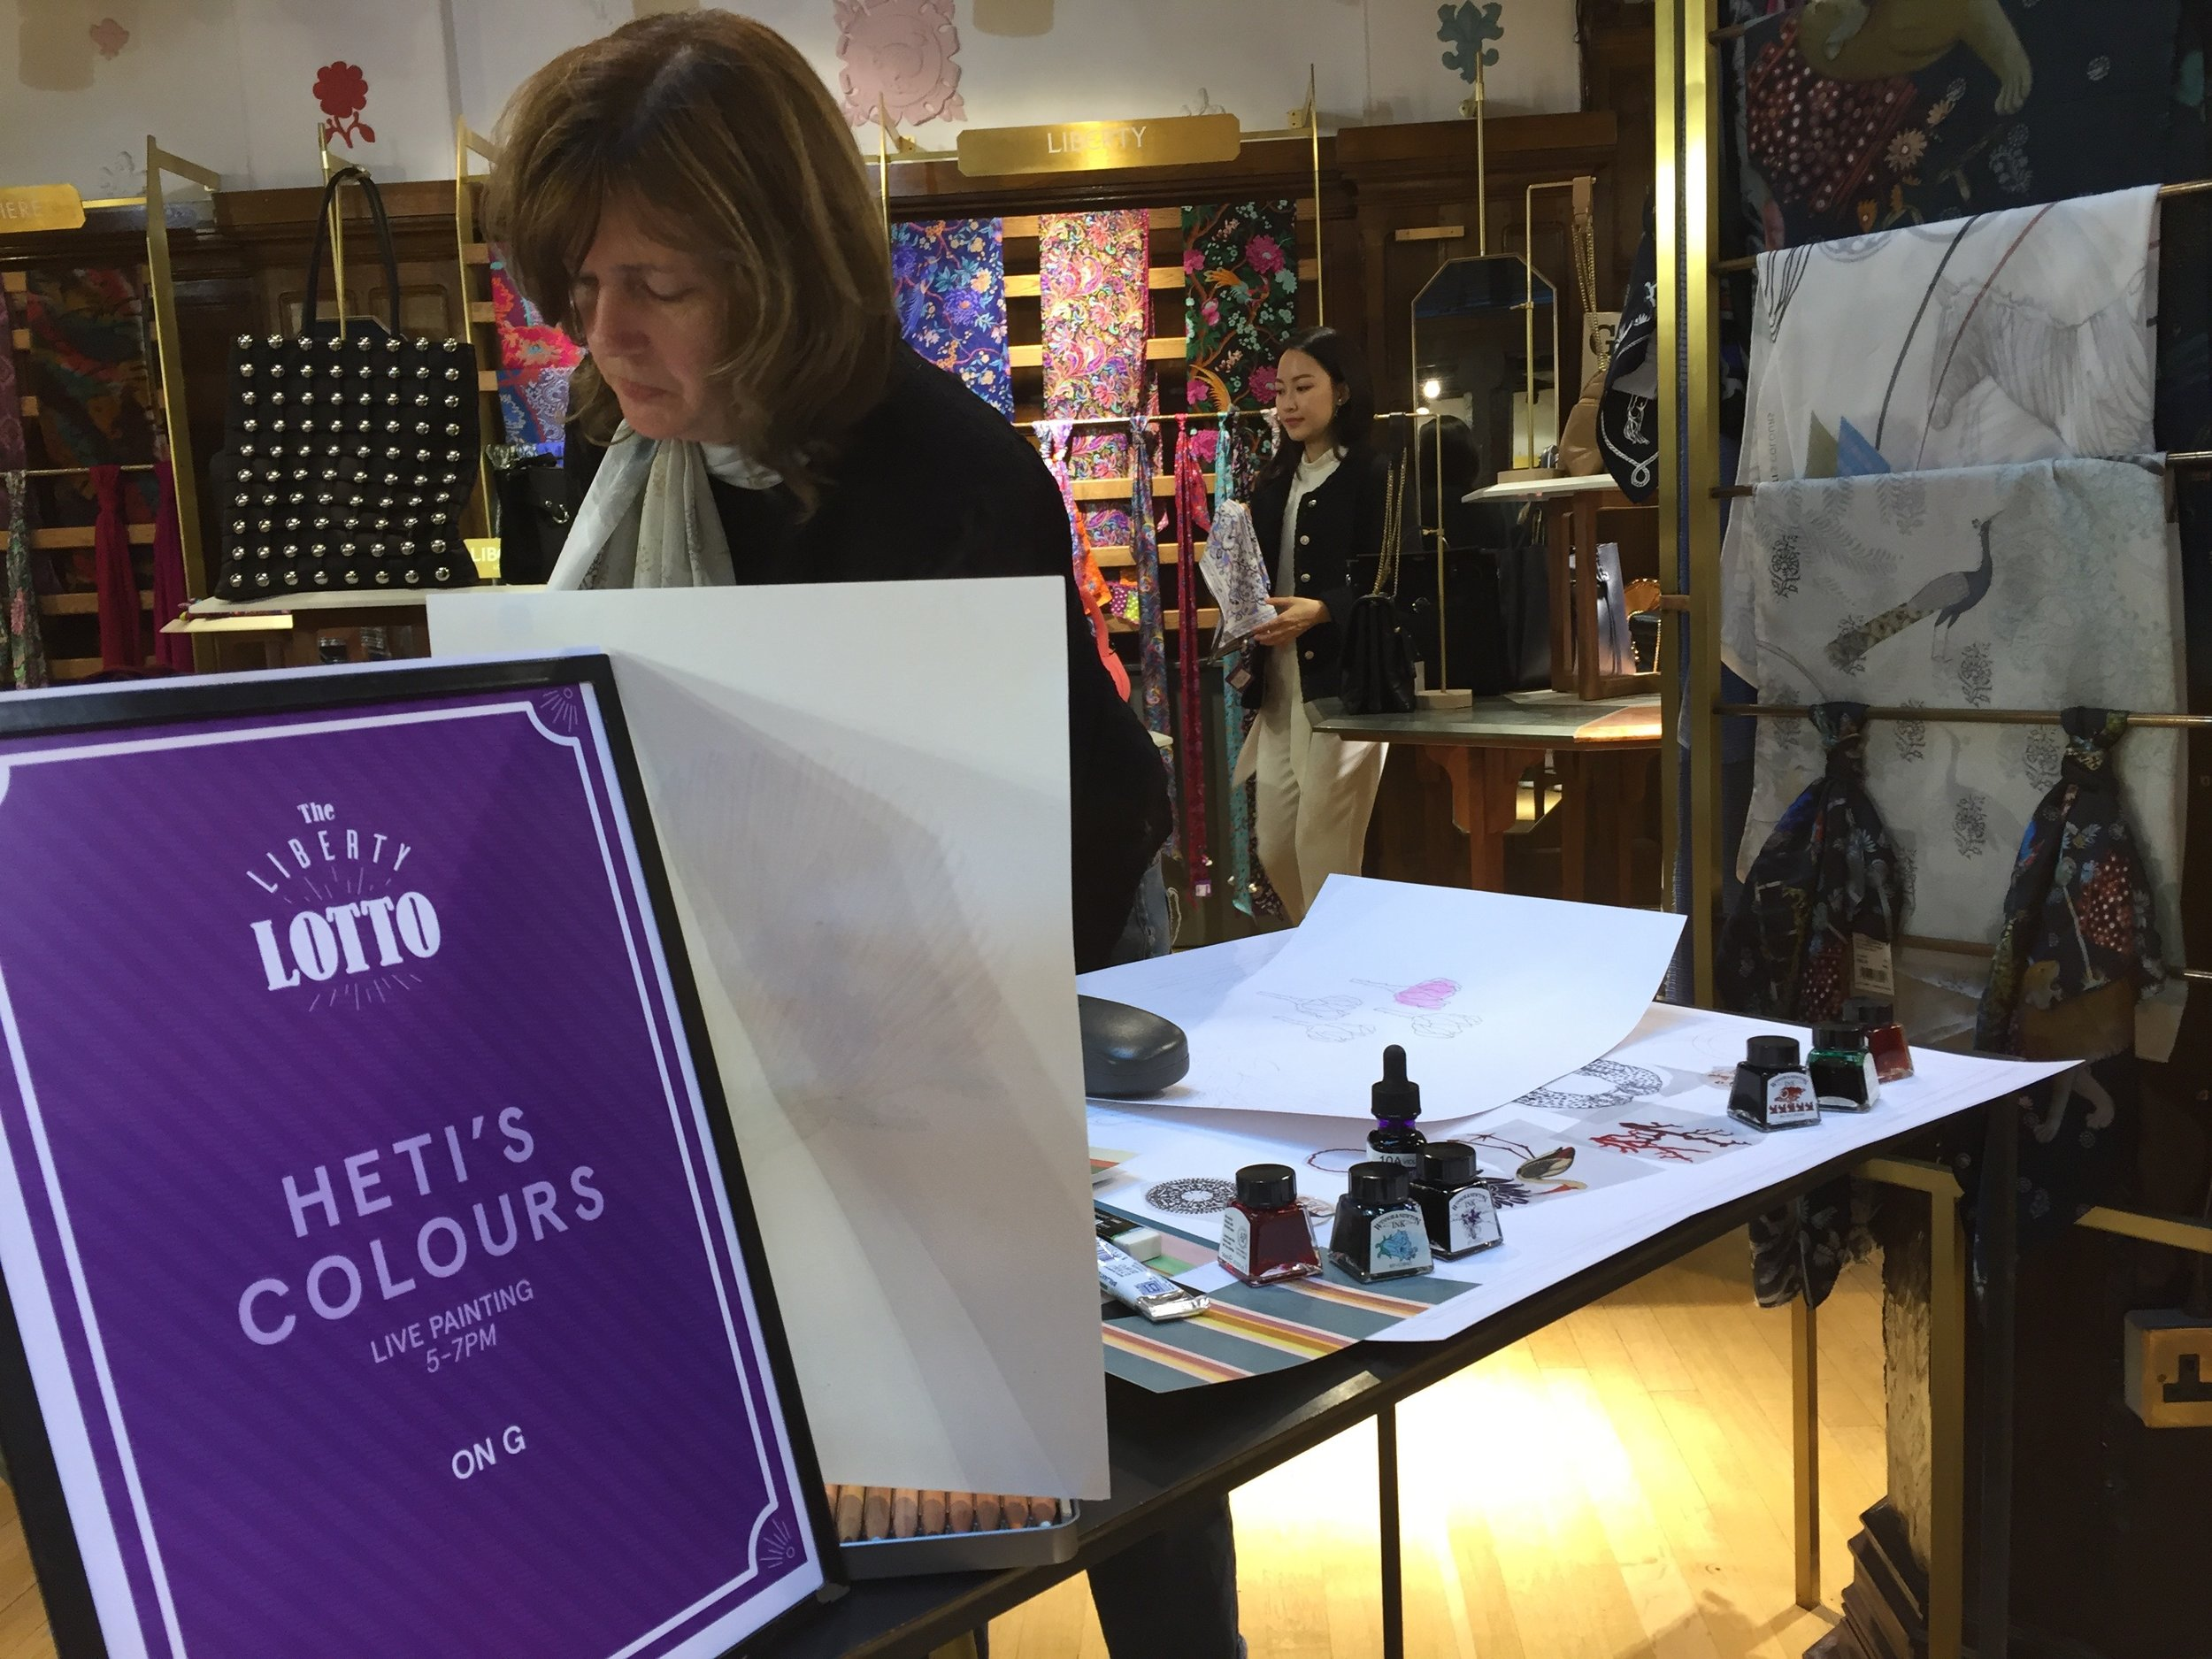 Liberty London Loyalty Night with Guest of Honour Heti Gervis, founder of Heti's Colours - Live Painting